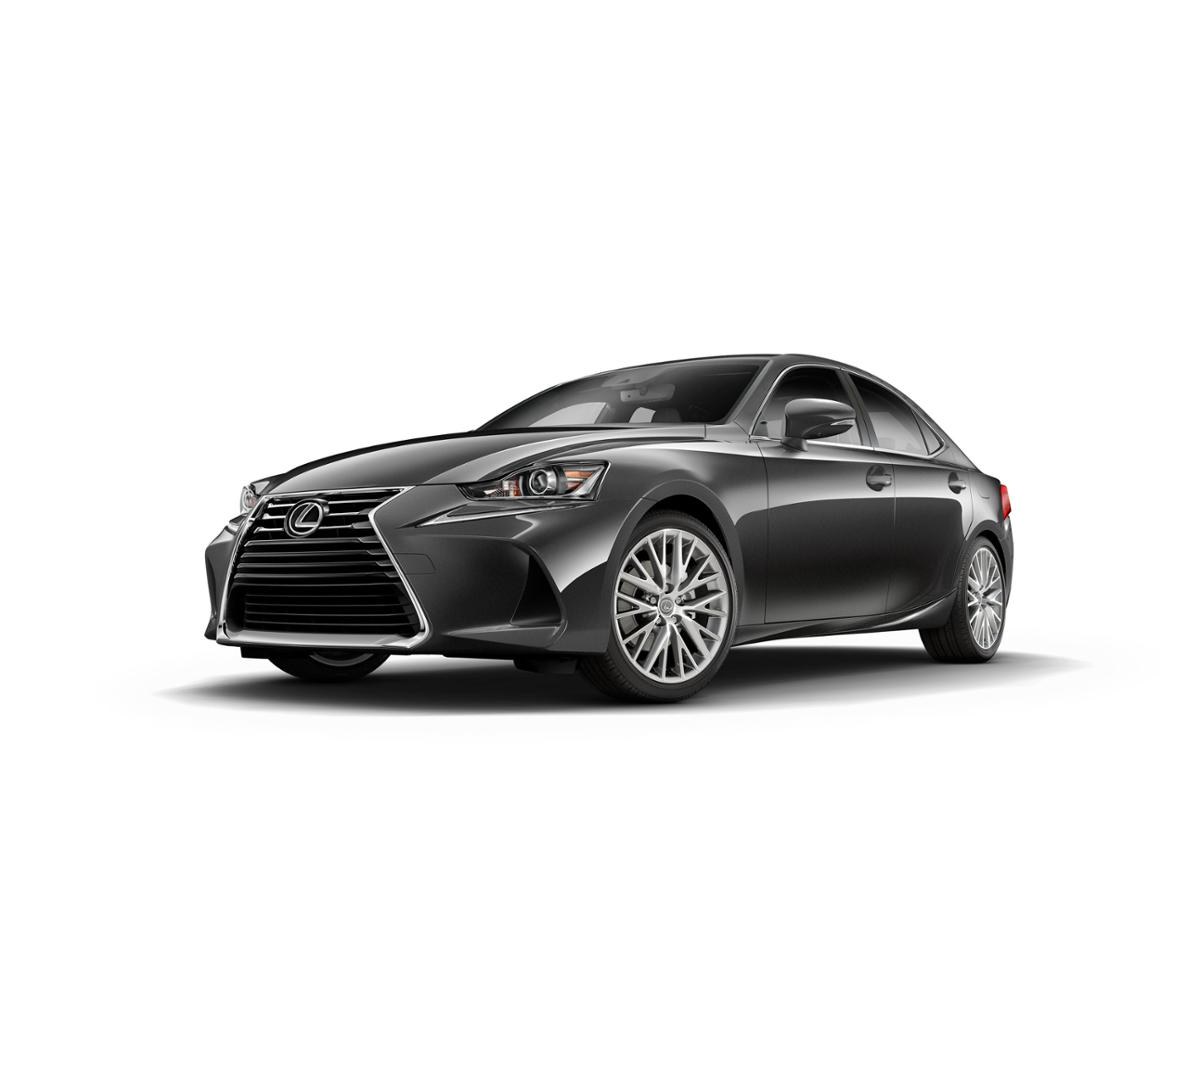 2017 Lexus IS Turbo Vehicle Photo in Las Vegas, NV 89146